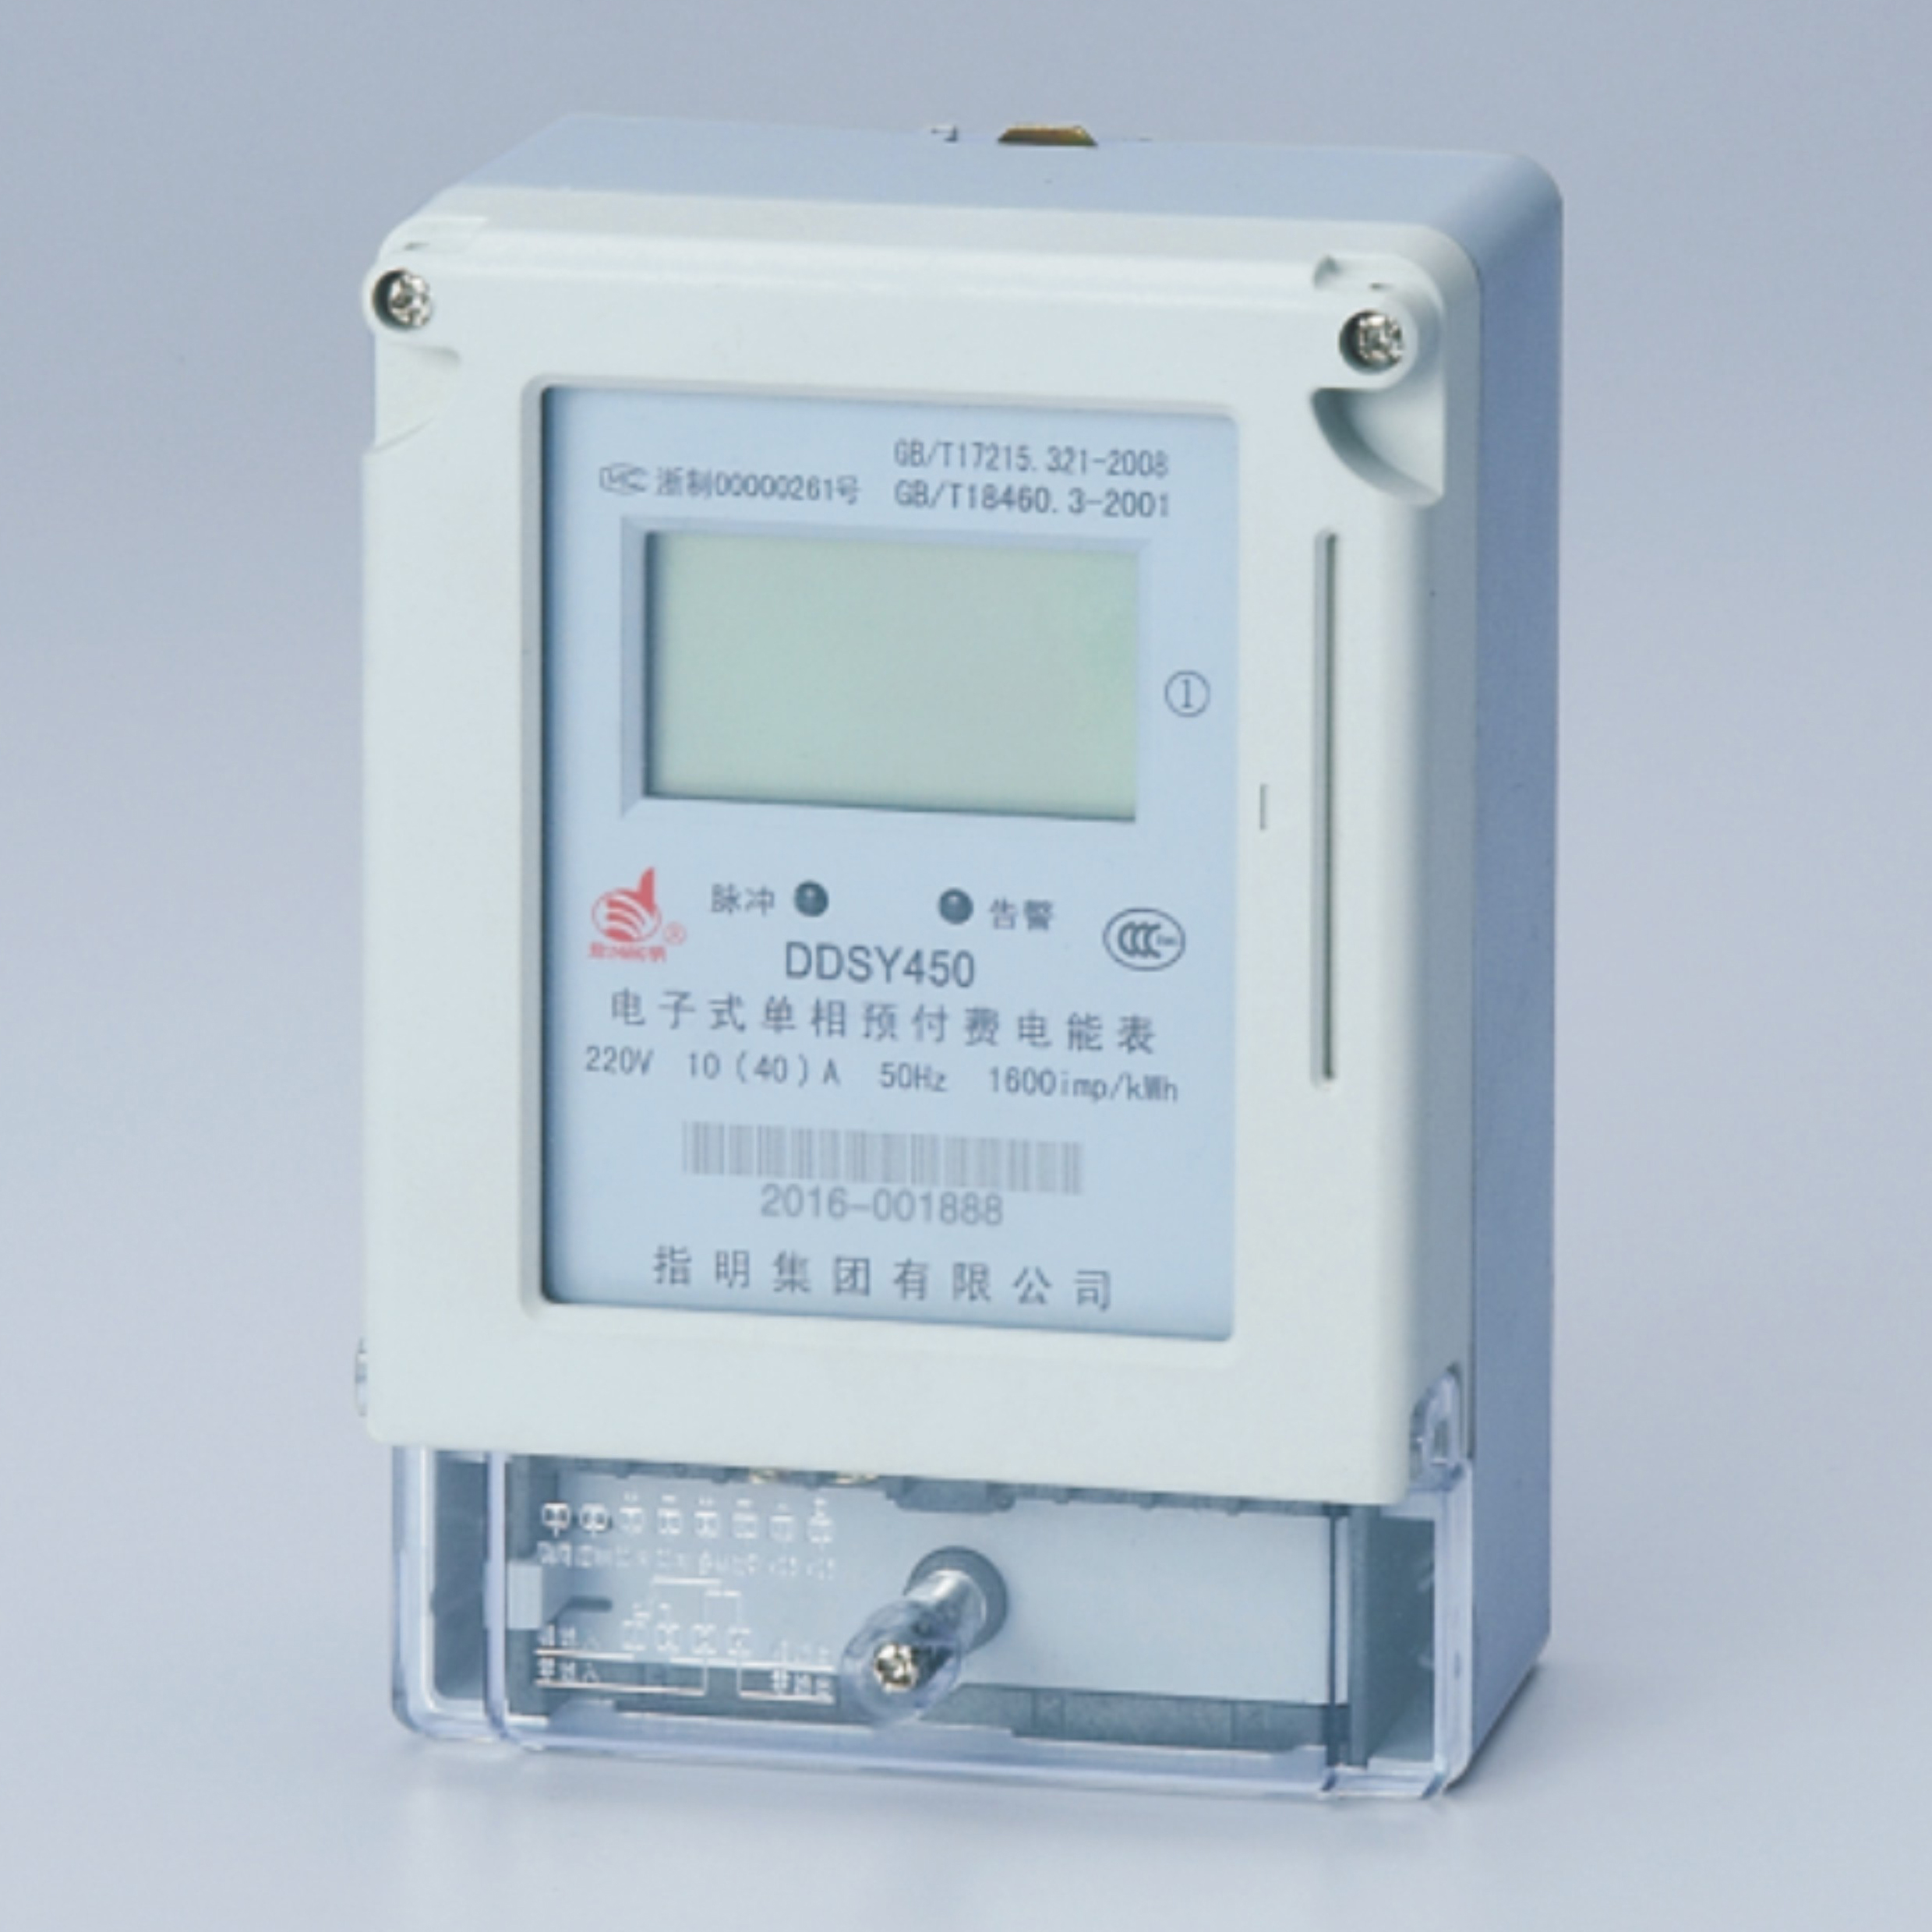 DDSY450 Single-phase electronic prepaid watt-hour meters